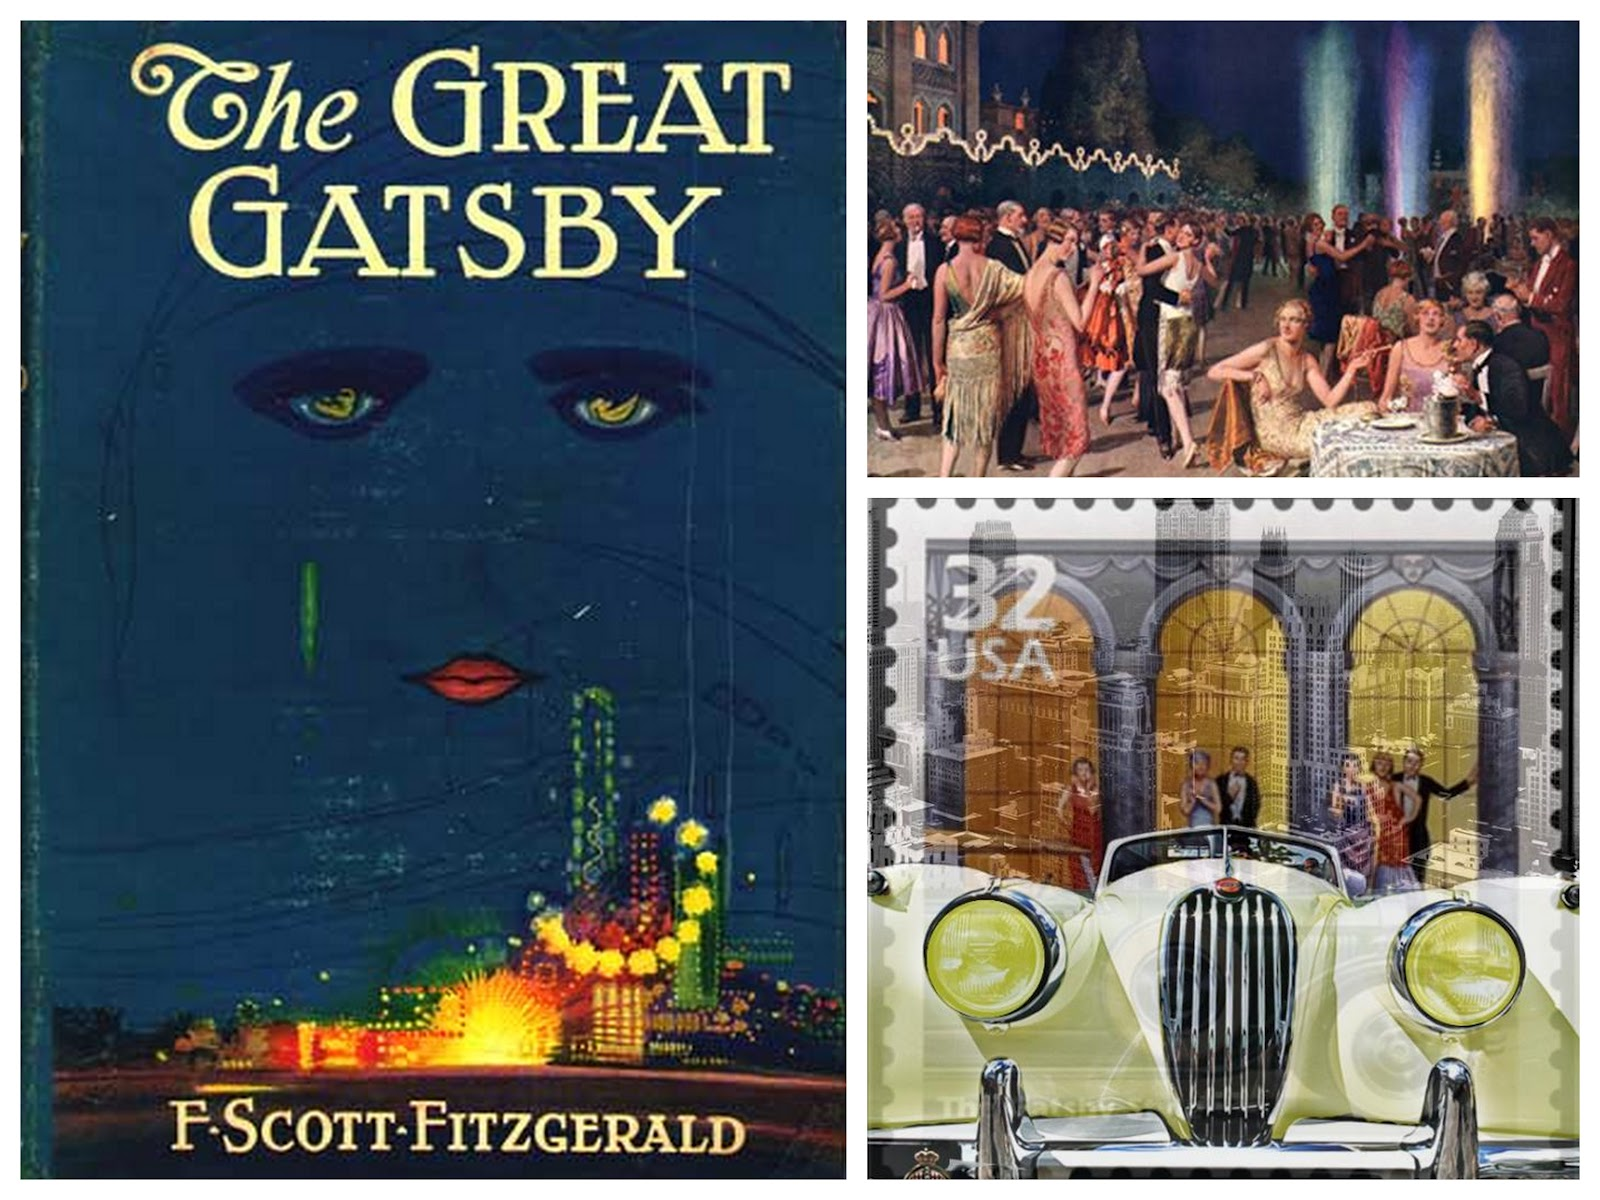 the great gatsby sociology of literatur Full-text paper (pdf): religious language and symbolism in the great gatsby 's valley of ashes.